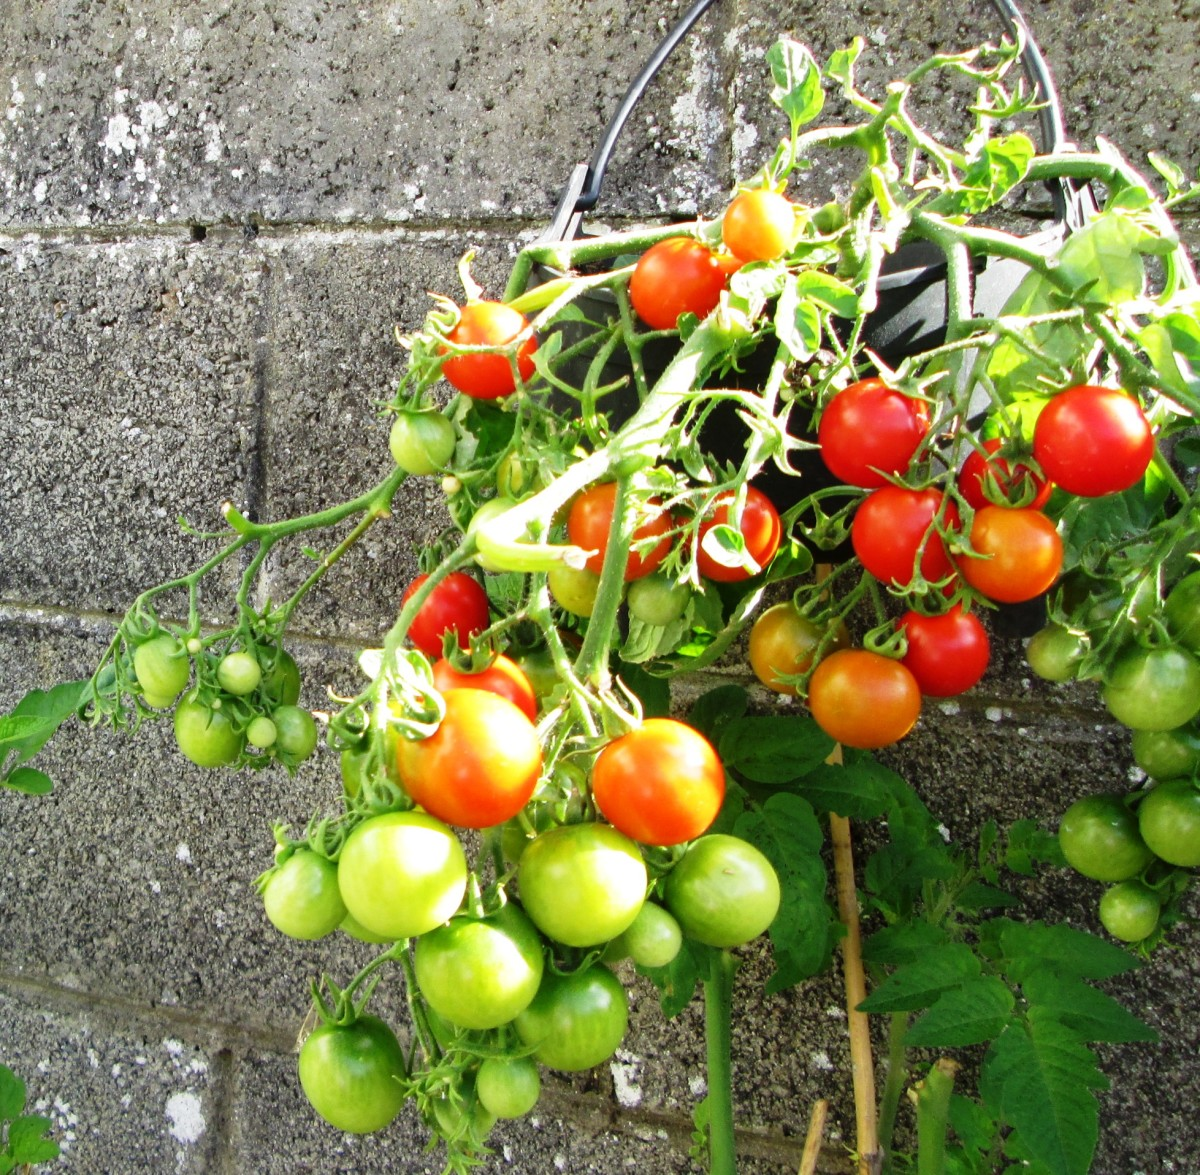 How to Care for Tomatoes in a Hanging Basket